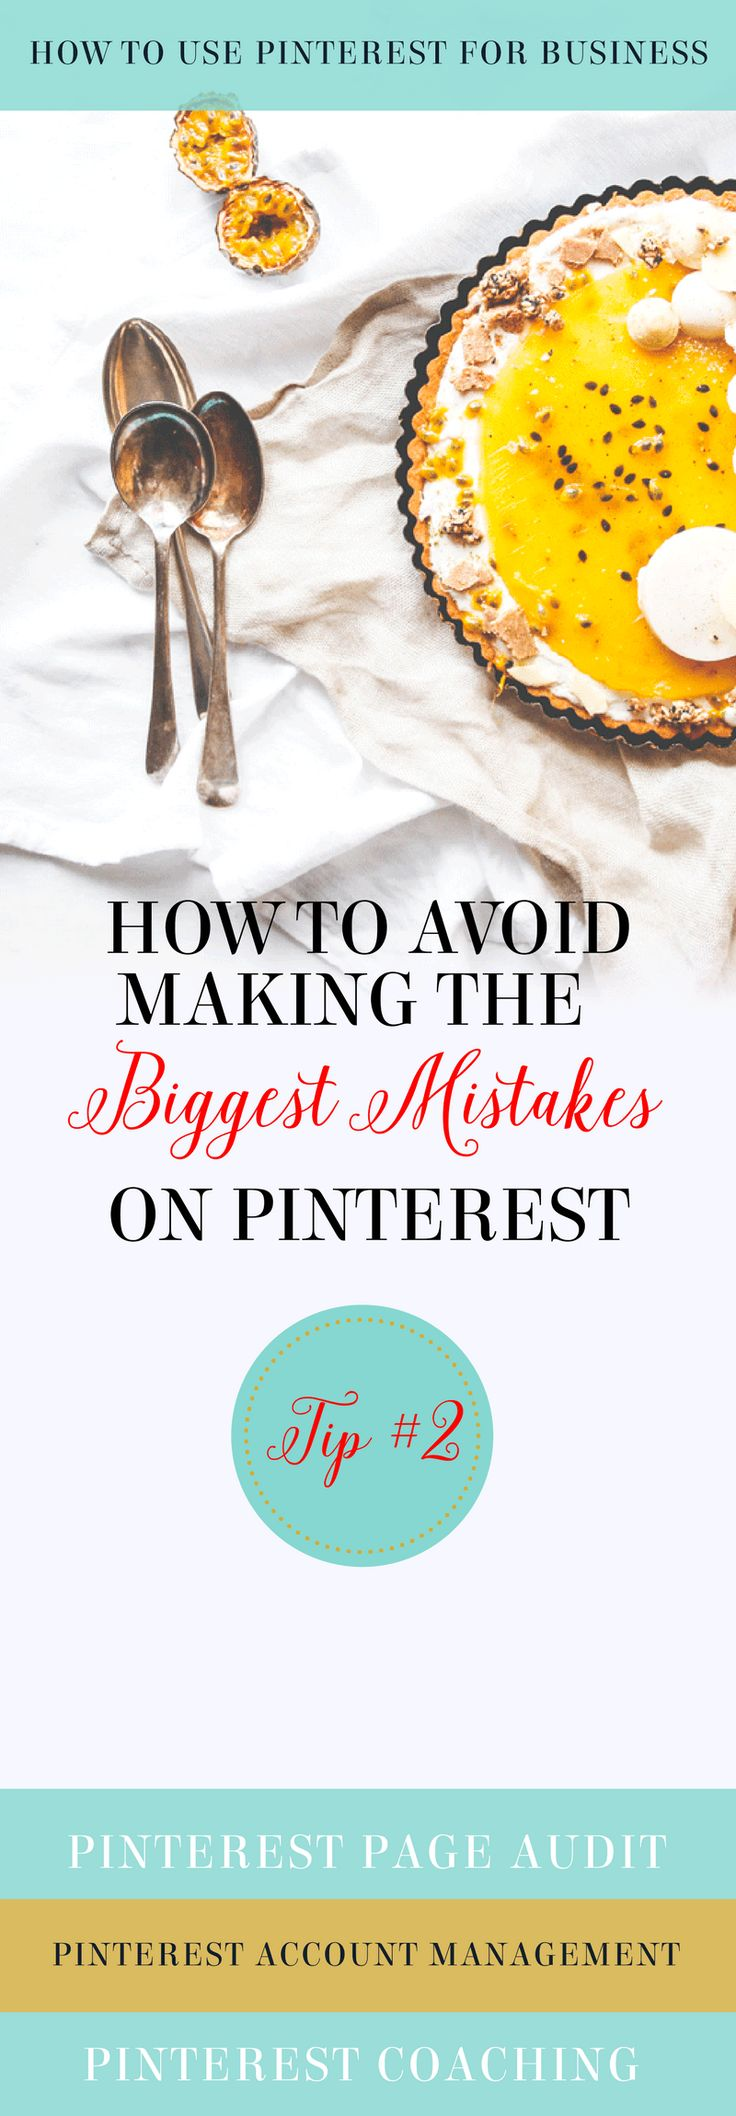 How to Use Pinterest for Business & Blogging: Avoid Making Big Pinterest Mistake #2